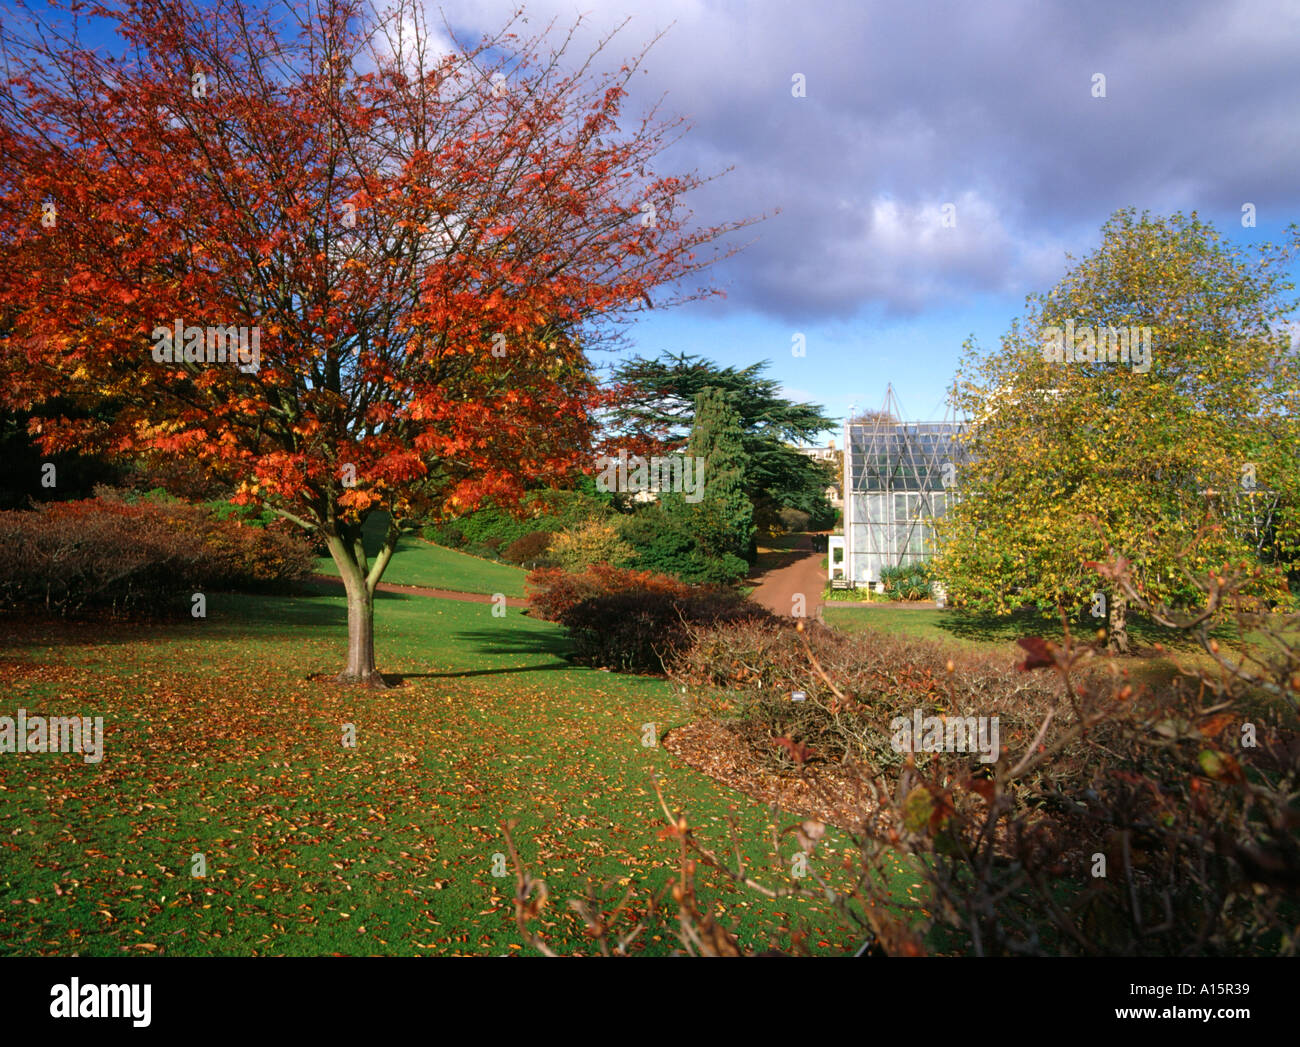 dh  ROYAL BOTANIC GARDEN EDINBURGH Red autumn leaves tree and Glasshouse botanical gardens park - Stock Image